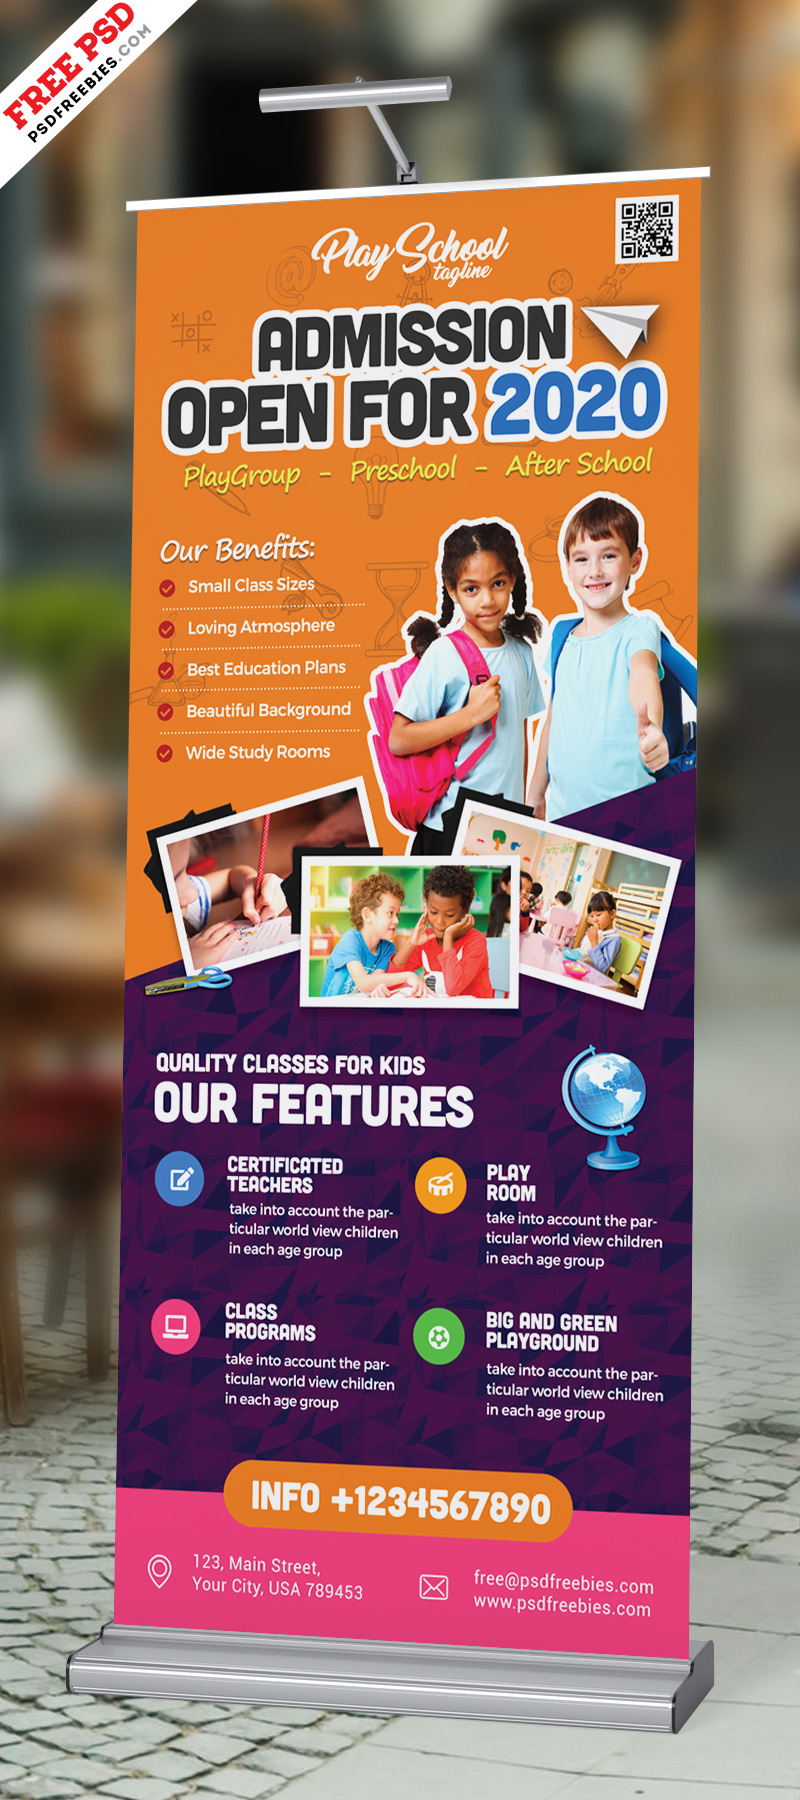 School Admission Open Roll Up Banner Psd Psdfreebies Com